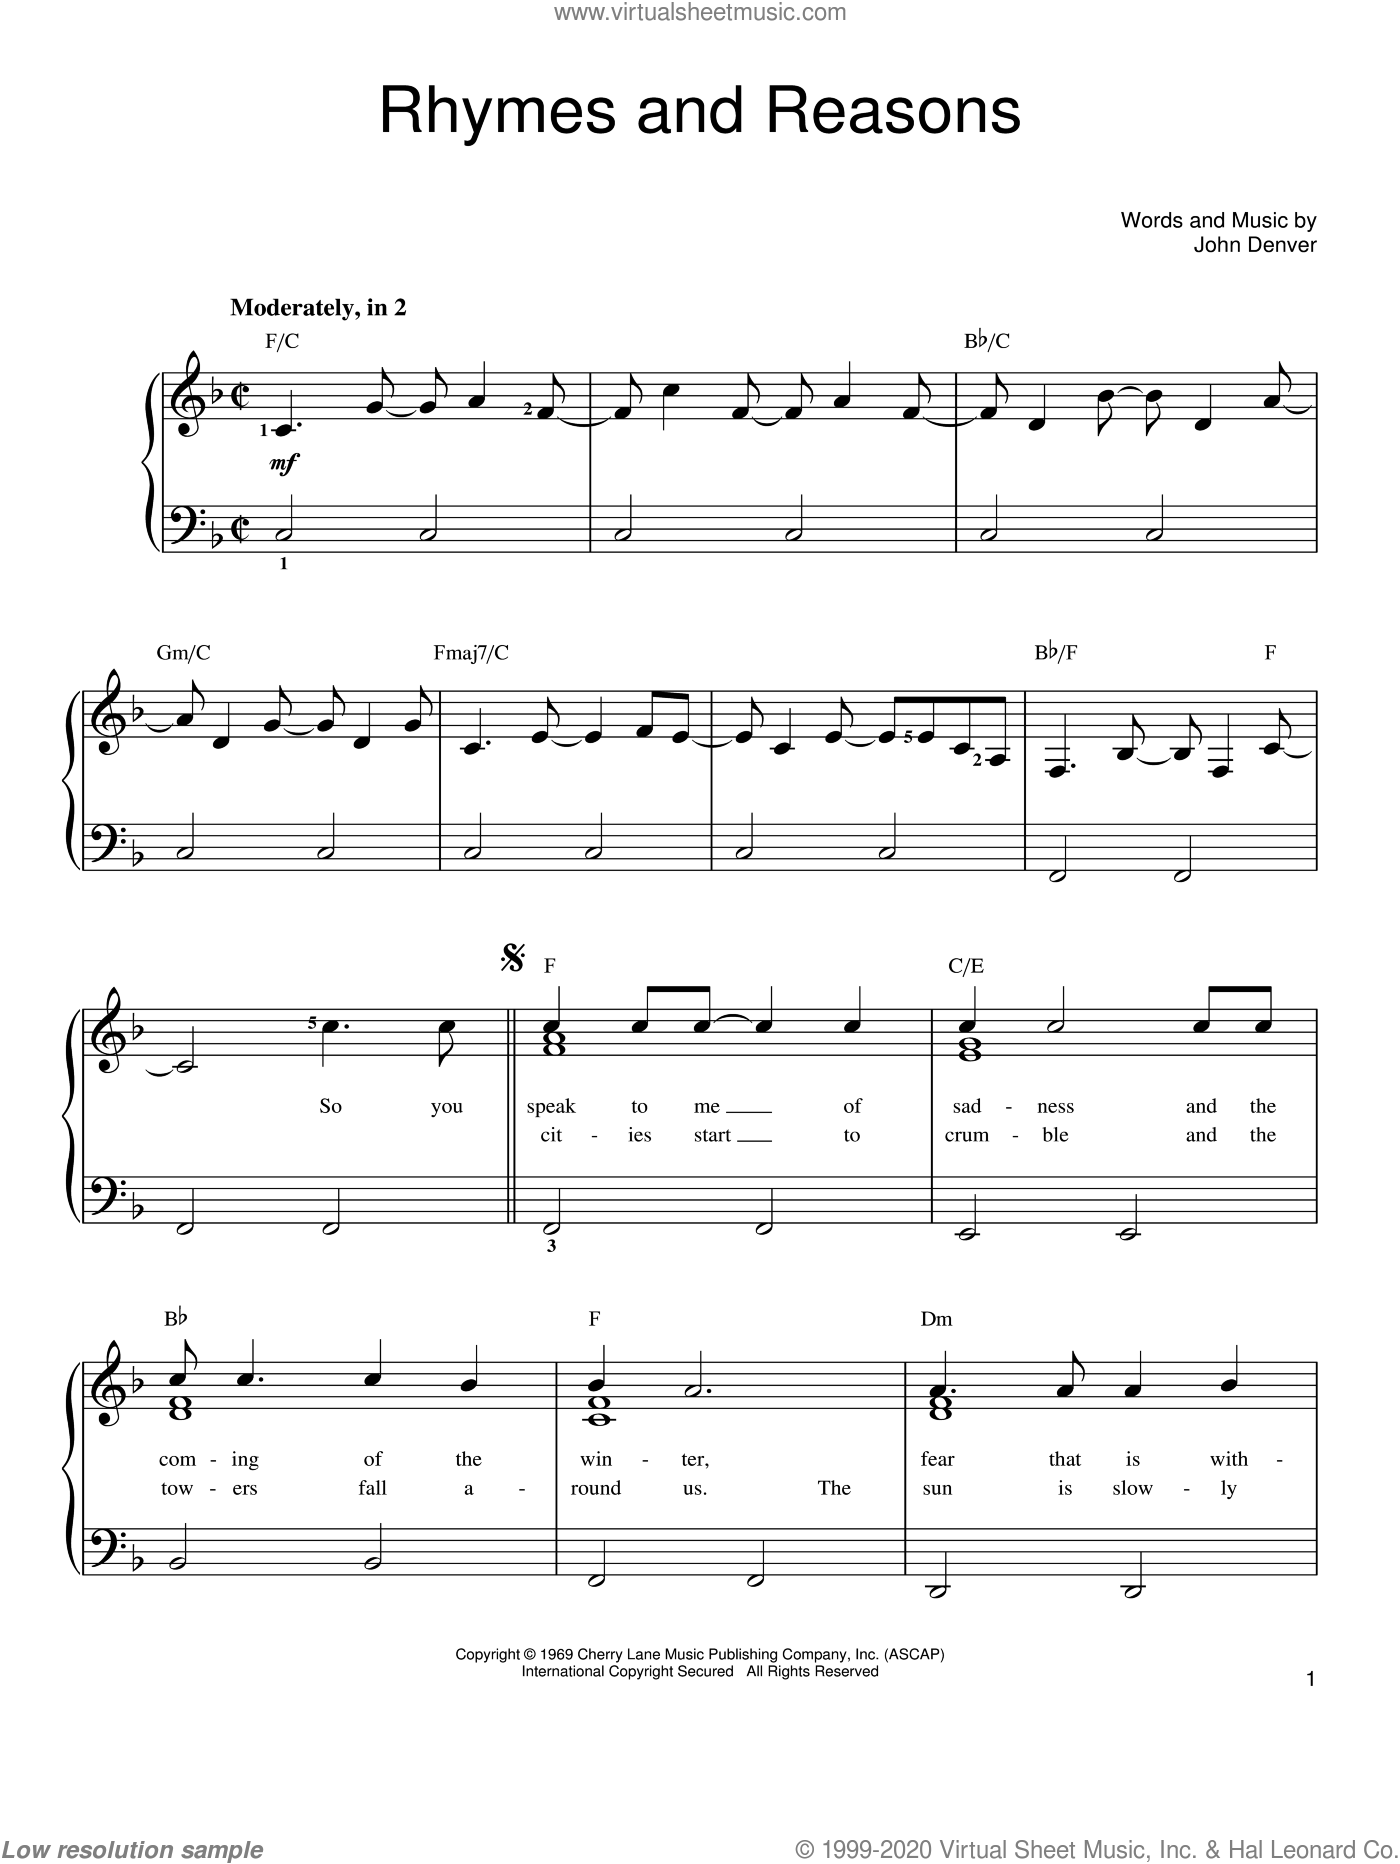 Rhymes And Reasons sheet music for piano solo (chords) by John Denver